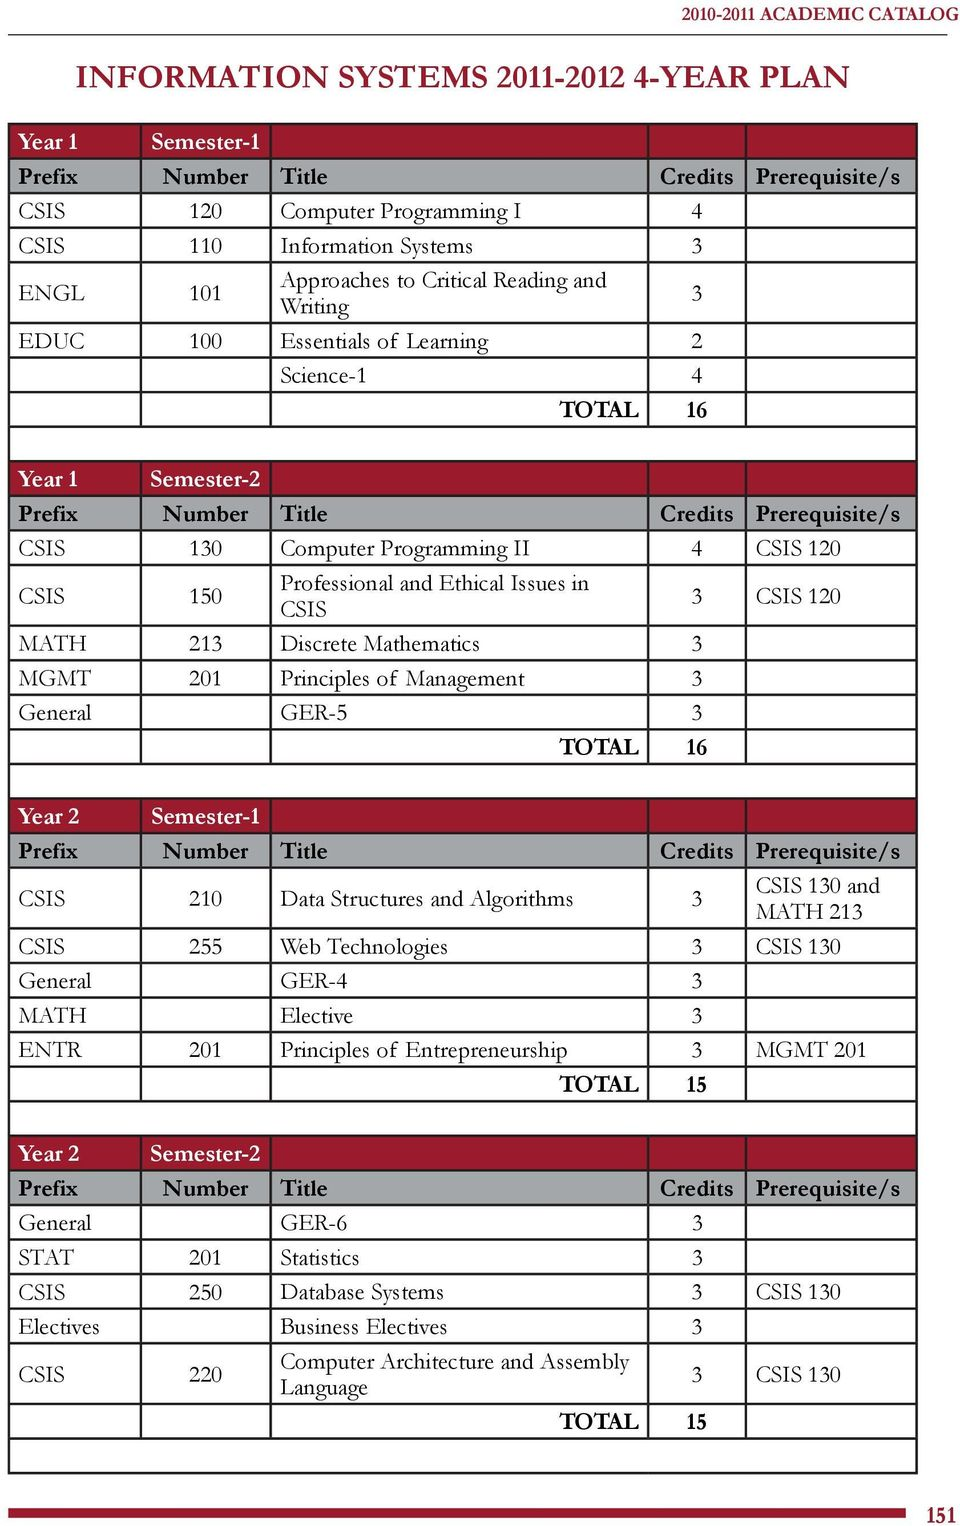 Mathematics 3 MGMT 201 Principles of Management 3 General GER-5 3 TOTAL 16 3 CSIS 120 Year 2 Semester-1 CSIS 210 Data Structures and Algorithms 3 CSIS 130 and MATH 213 CSIS 255 Web Technologies 3